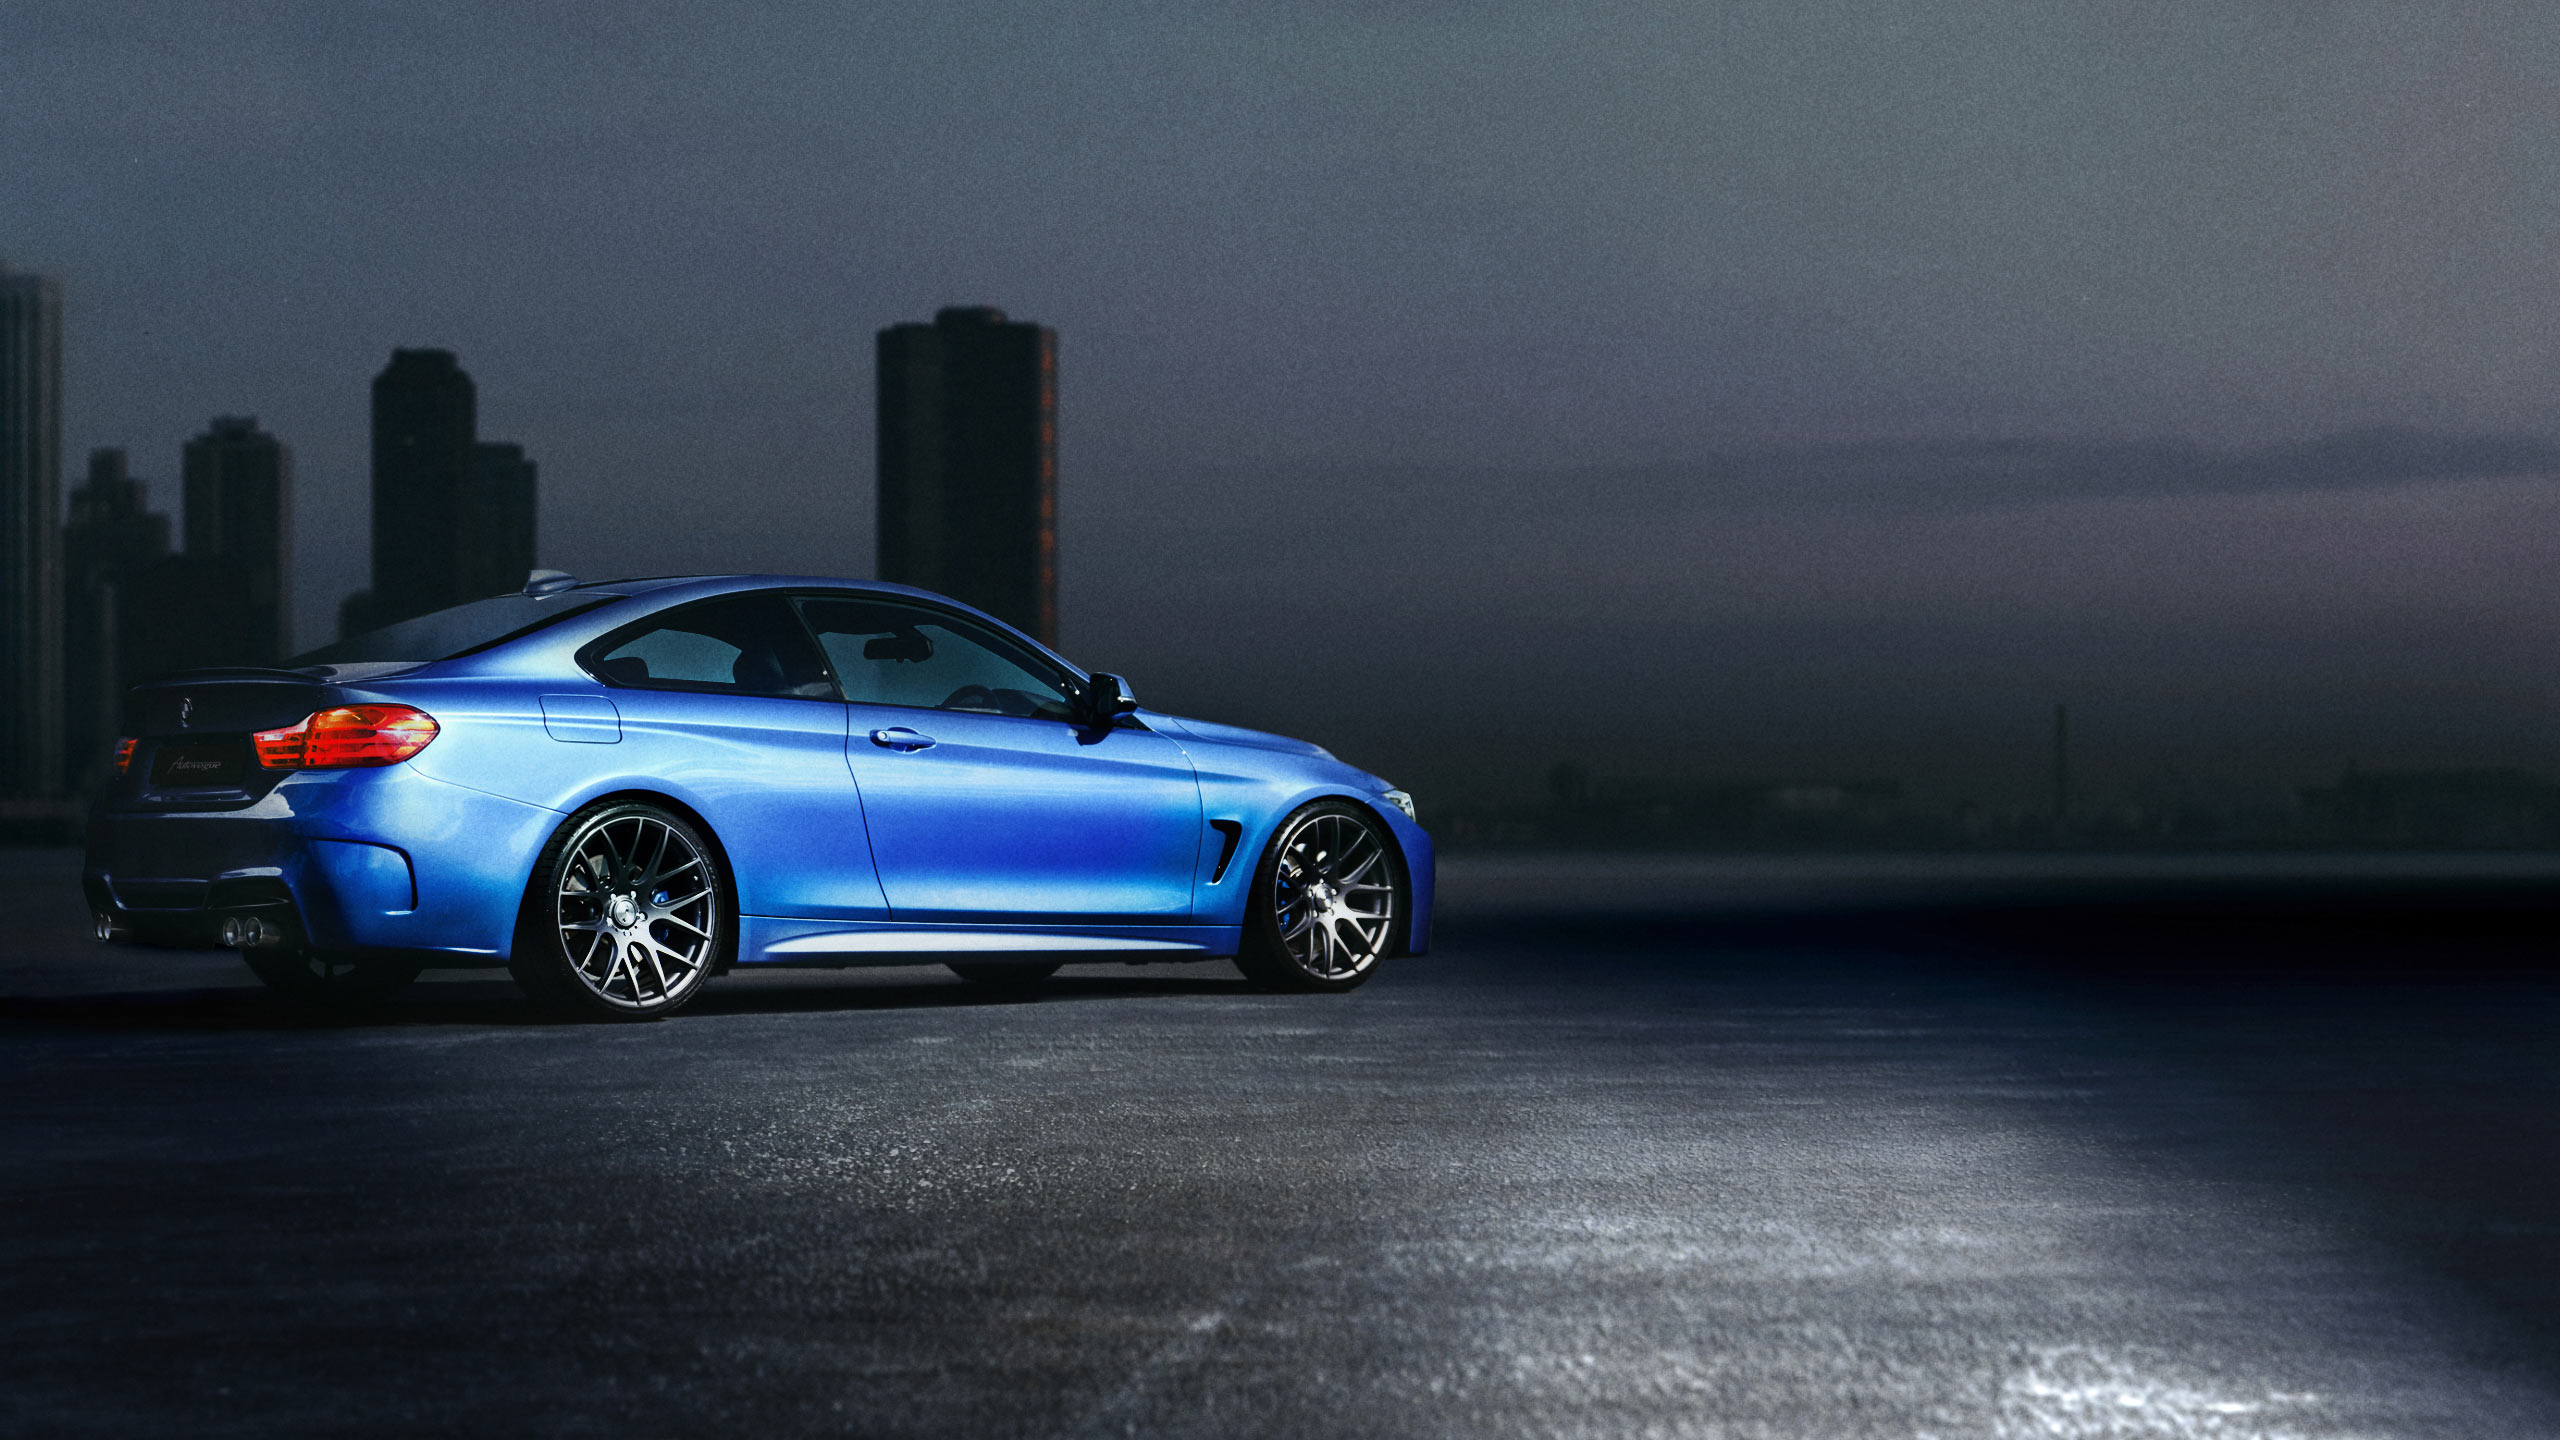 bmw 4 series coupe autovogue bespoke. Black Bedroom Furniture Sets. Home Design Ideas